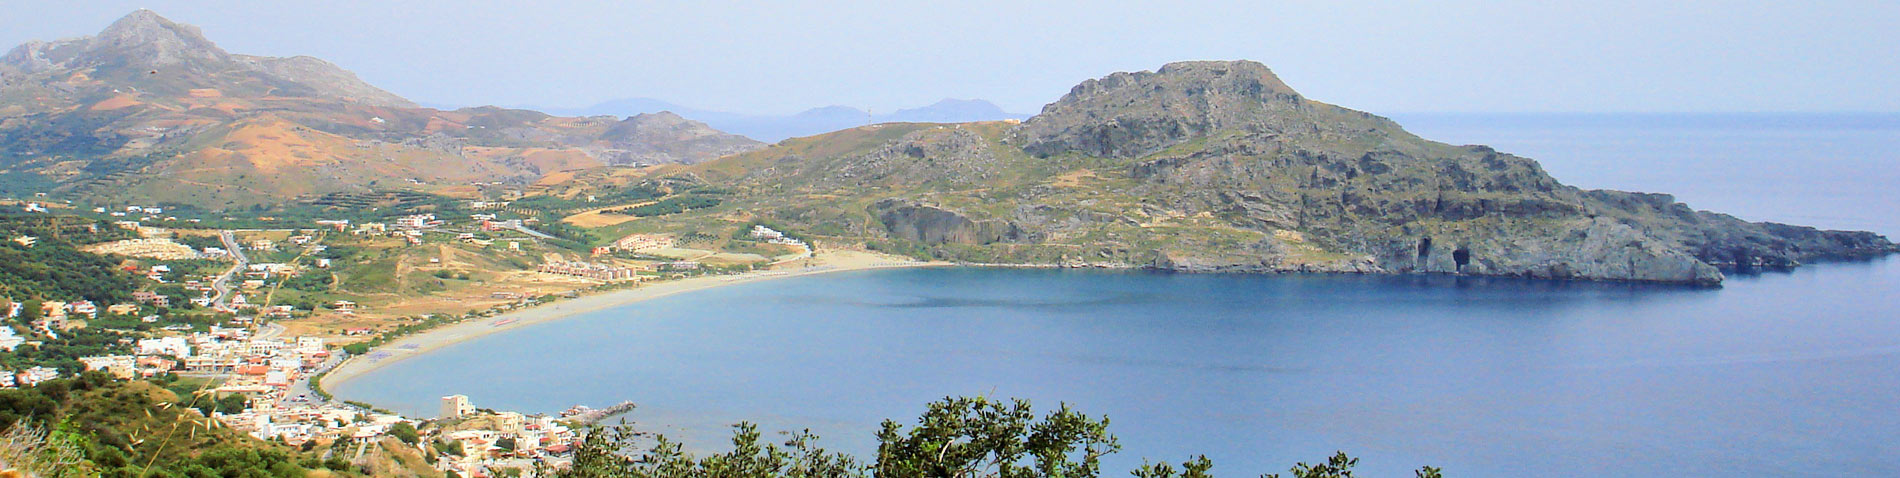 Find us in Mirthios, Plakias, Crete